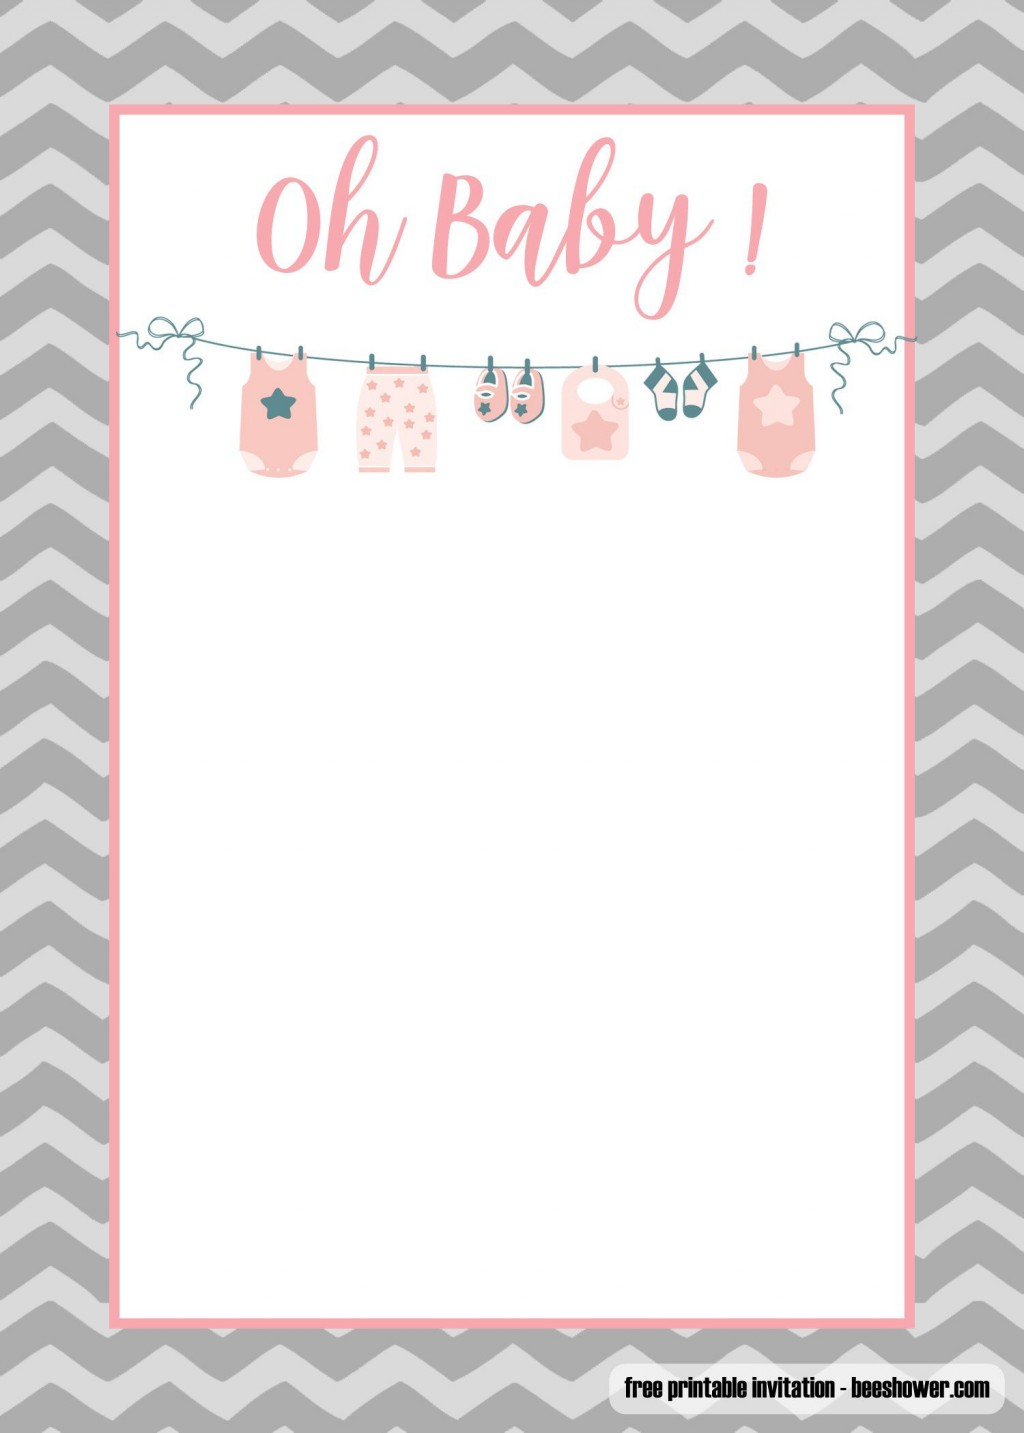 008 Remarkable Baby Shower Template Free Printable Photo  Superhero Invitation For A Boy DiaperLarge